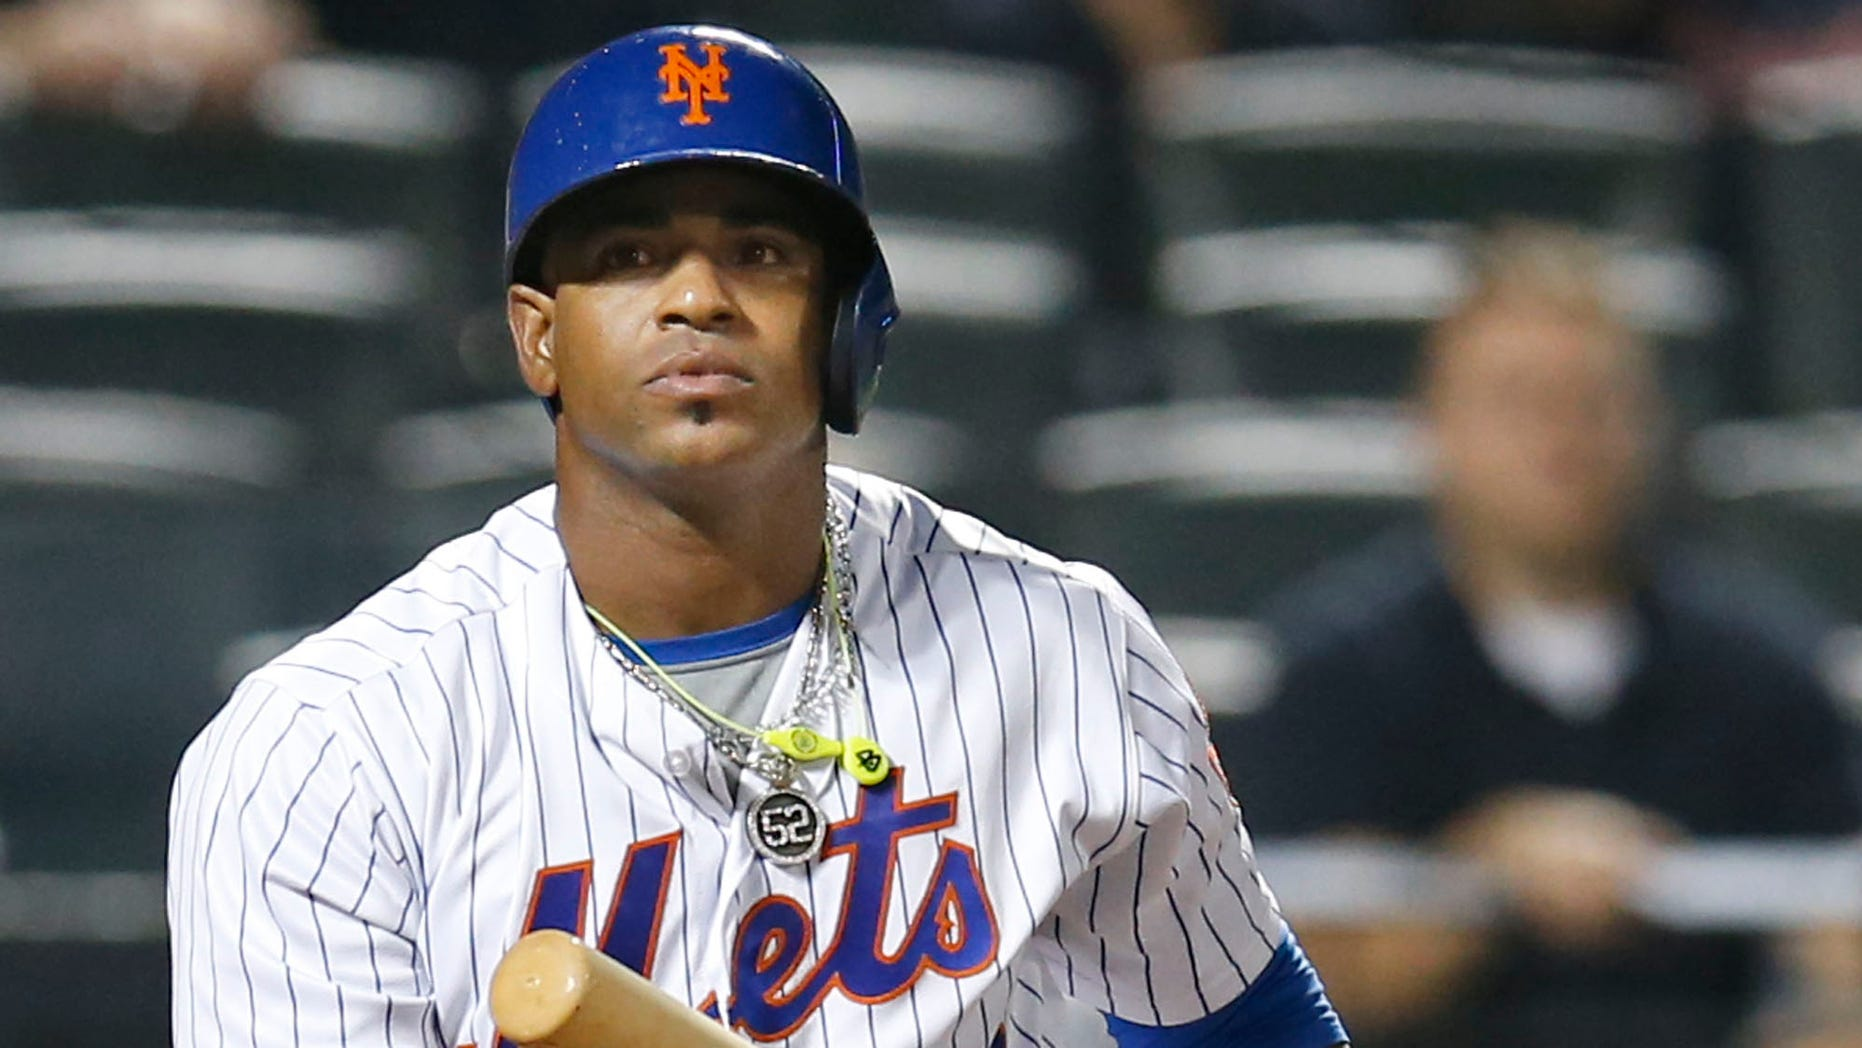 FILE - In this Sept. 20, 2016, file photo, New York Mets' Yoenis Cespedes reacts after striking out swinging for the final out in the Mets' 5-4 loss to the Atlanta Braves in a baseball game in New York.  Cespdes is expected to opt out of the remainder of his contract, which would pay $47.5 million over two seasons, and become a free agent again. (AP Photo/Kathy Willens, File)